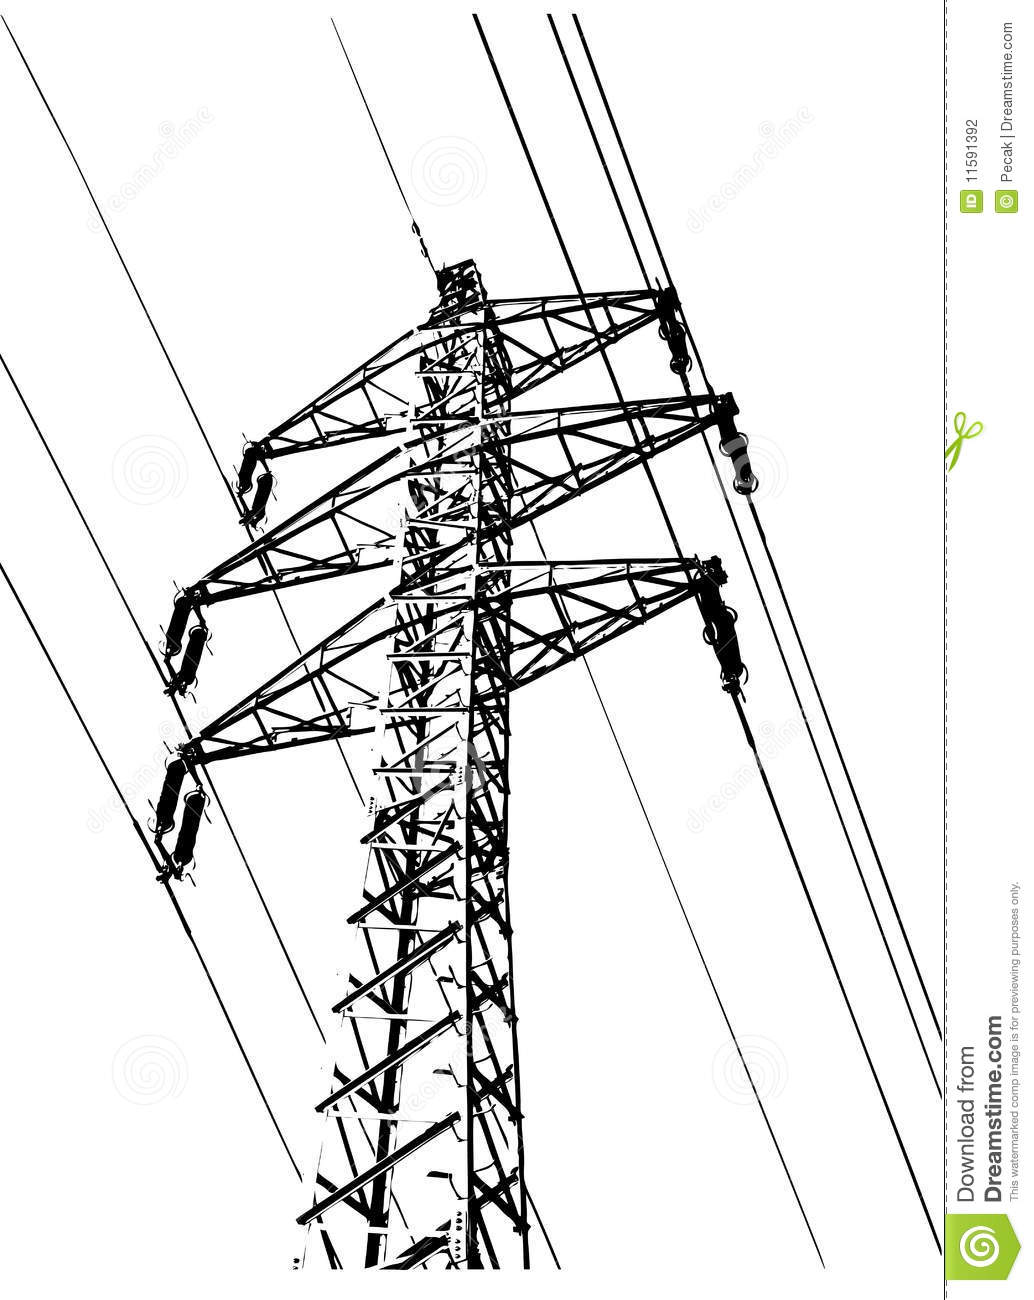 Electric Wiring Stock Photo Image Of Ribs Pylons